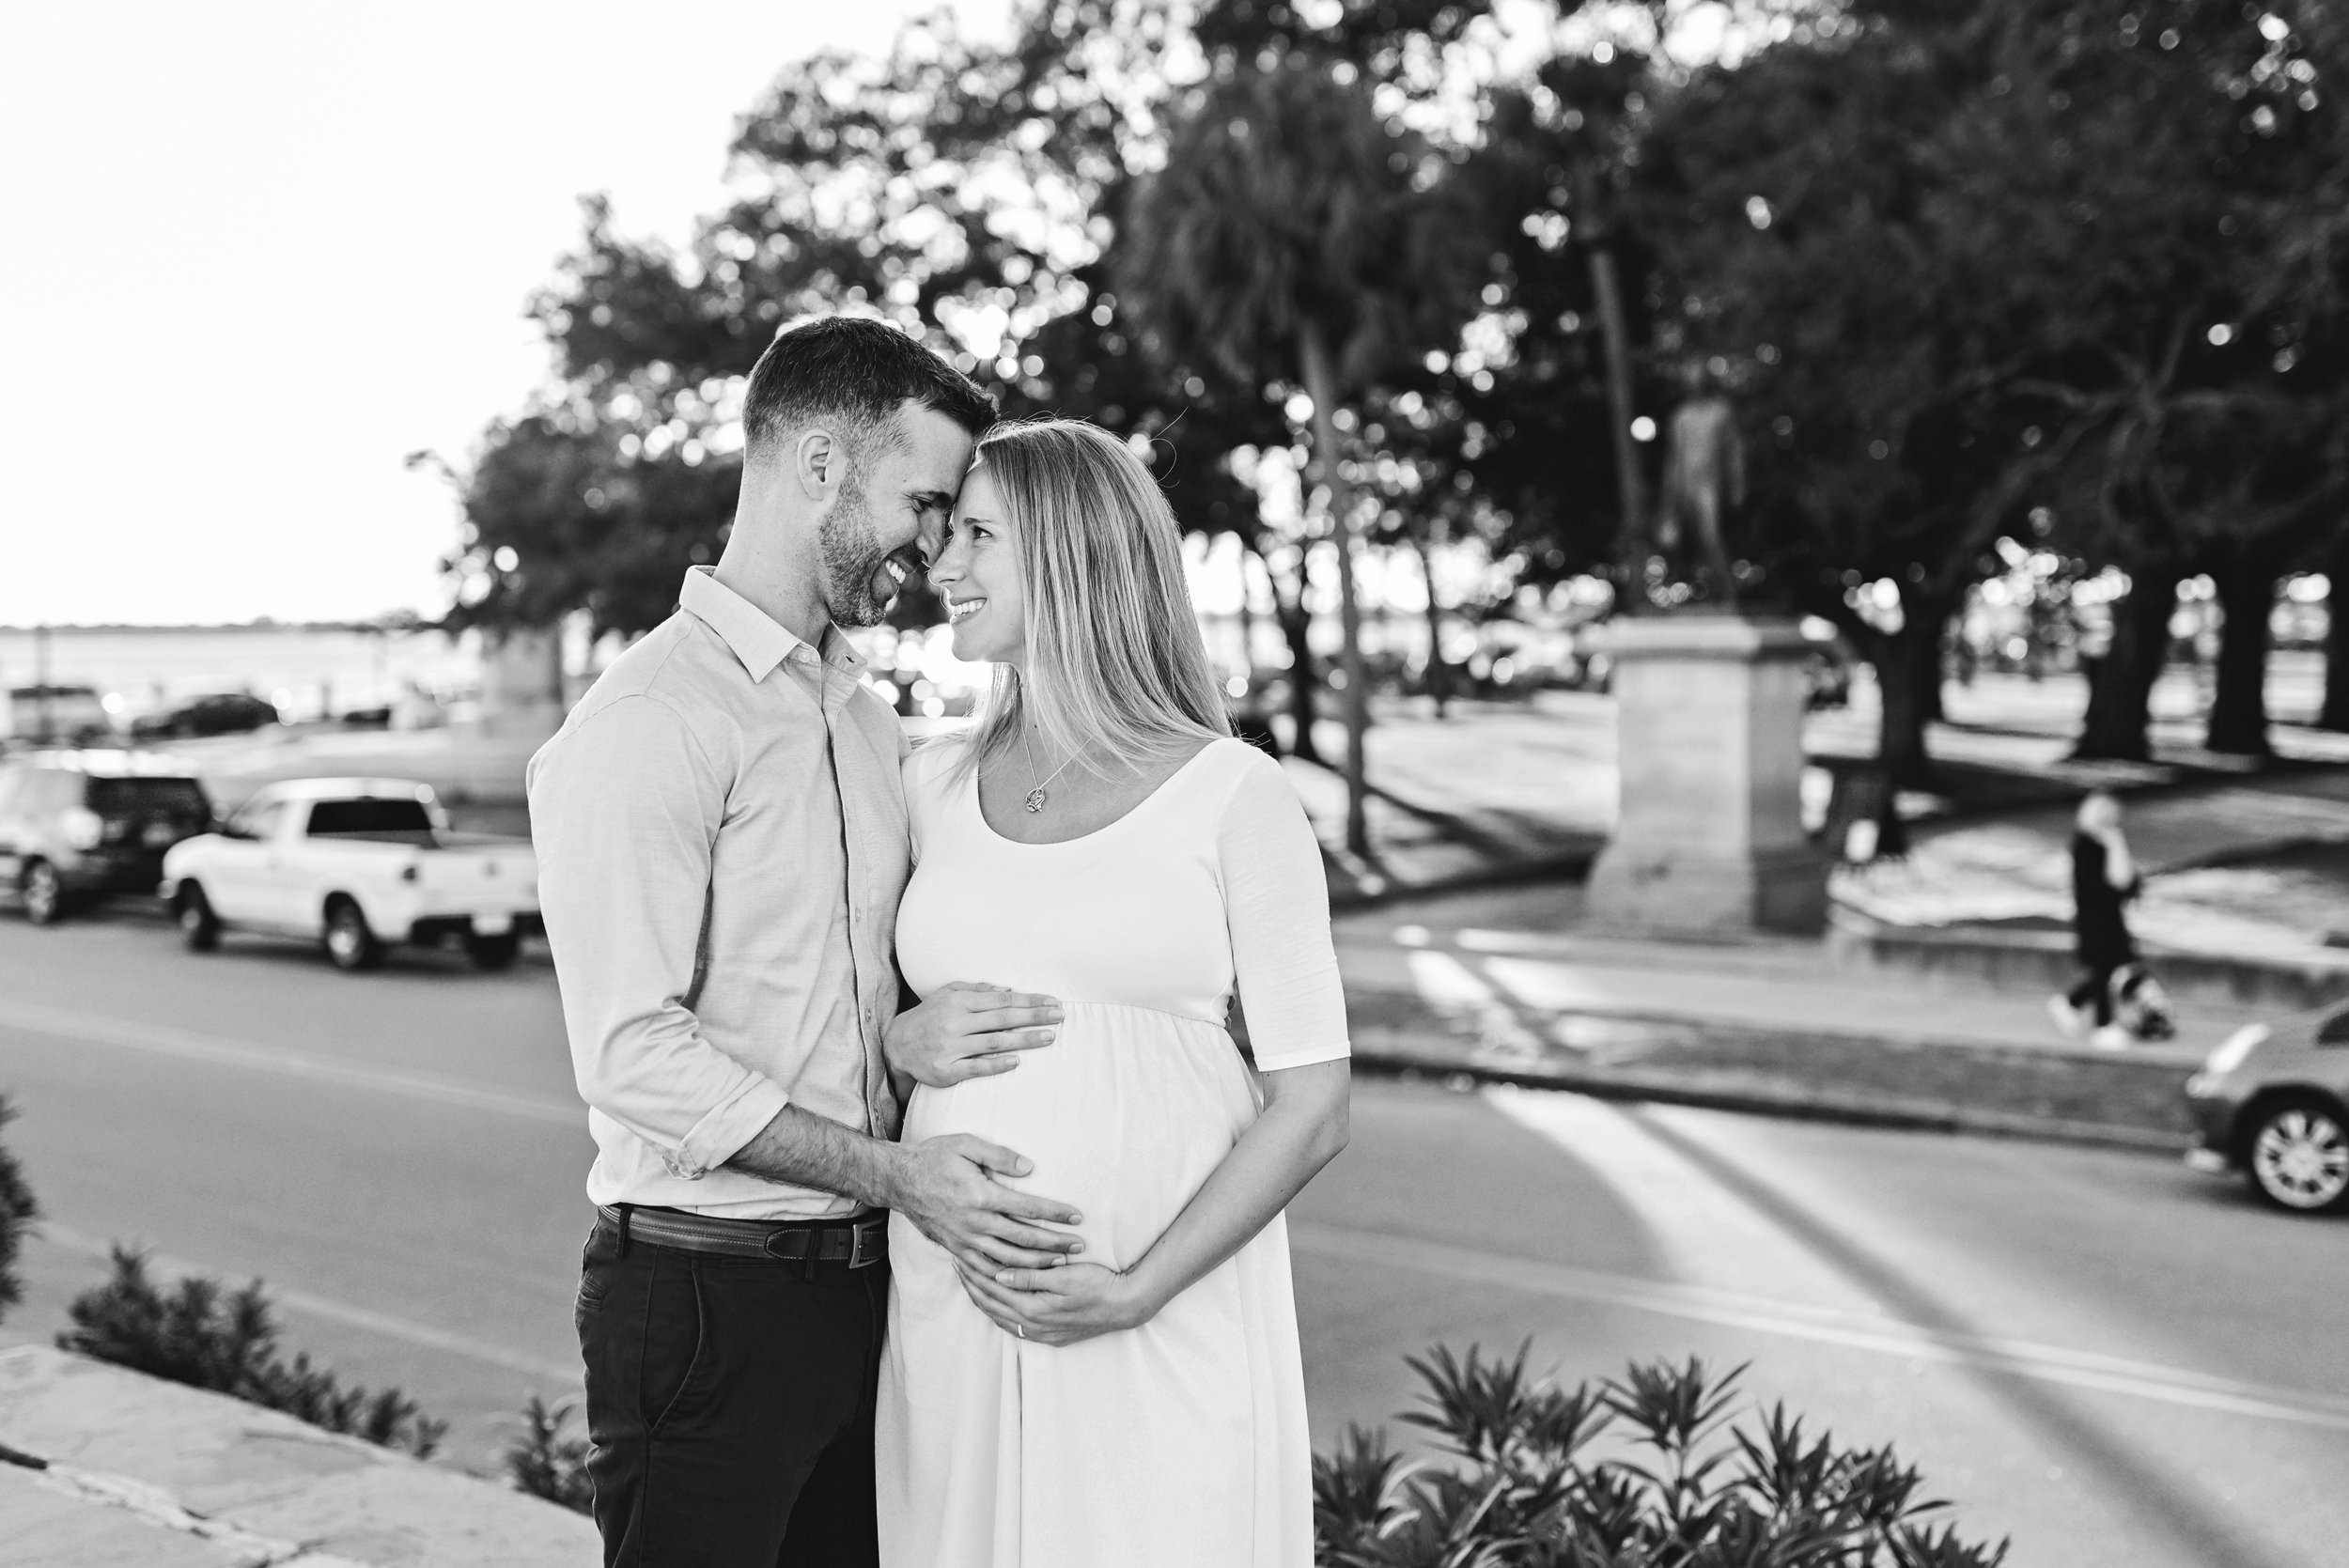 Charleston-Maternity-Photographer-FSP_8507BW copy.jpg